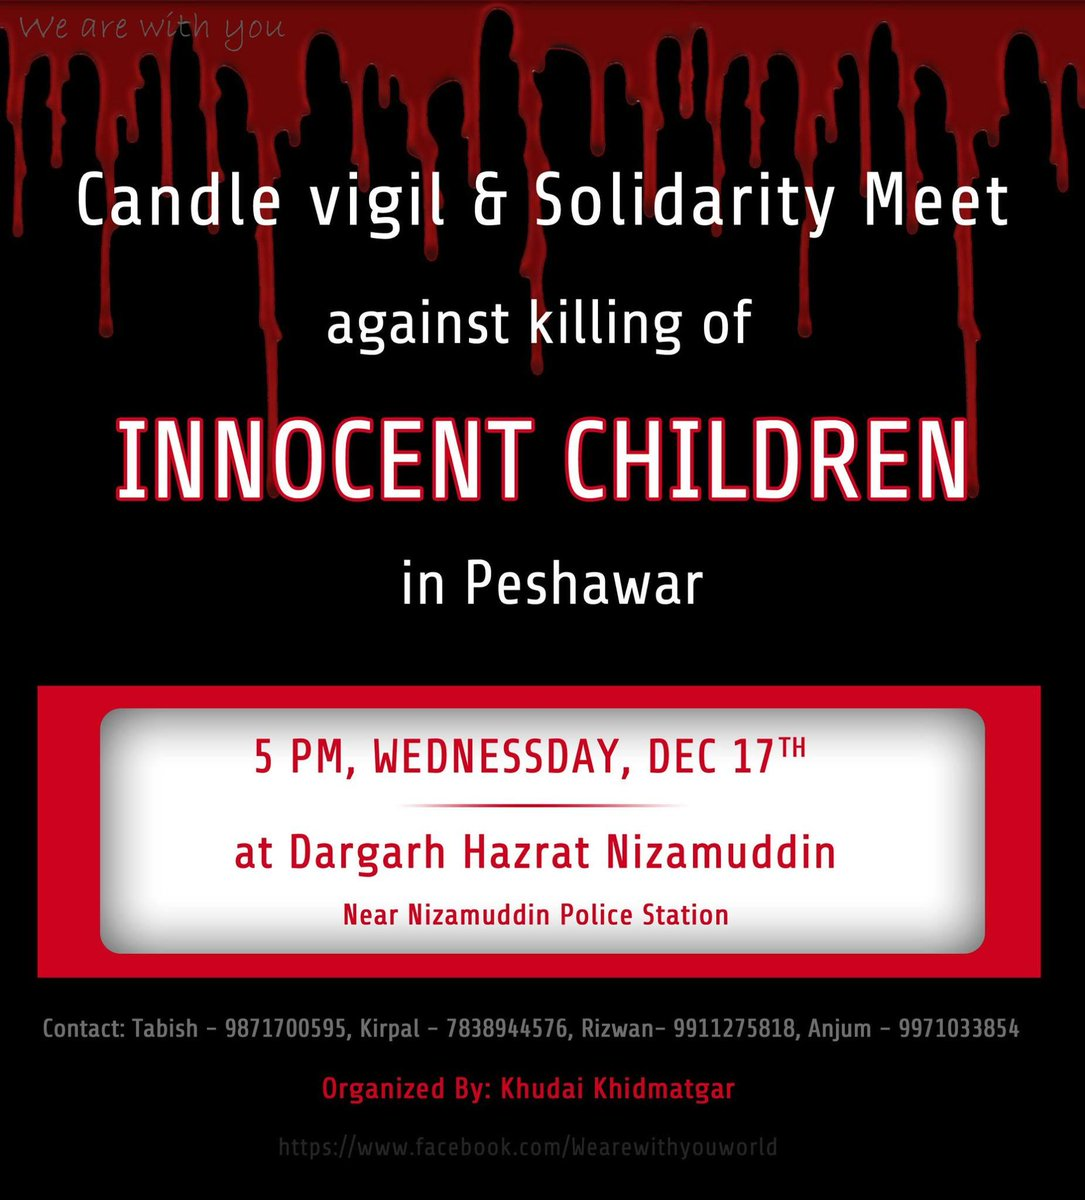 Candle vigil and solidarity meet on 17th December @ 5.pm In front of Dargah Hazrat Nizamuddin for peshawar children http://t.co/K8hIdqj8zv